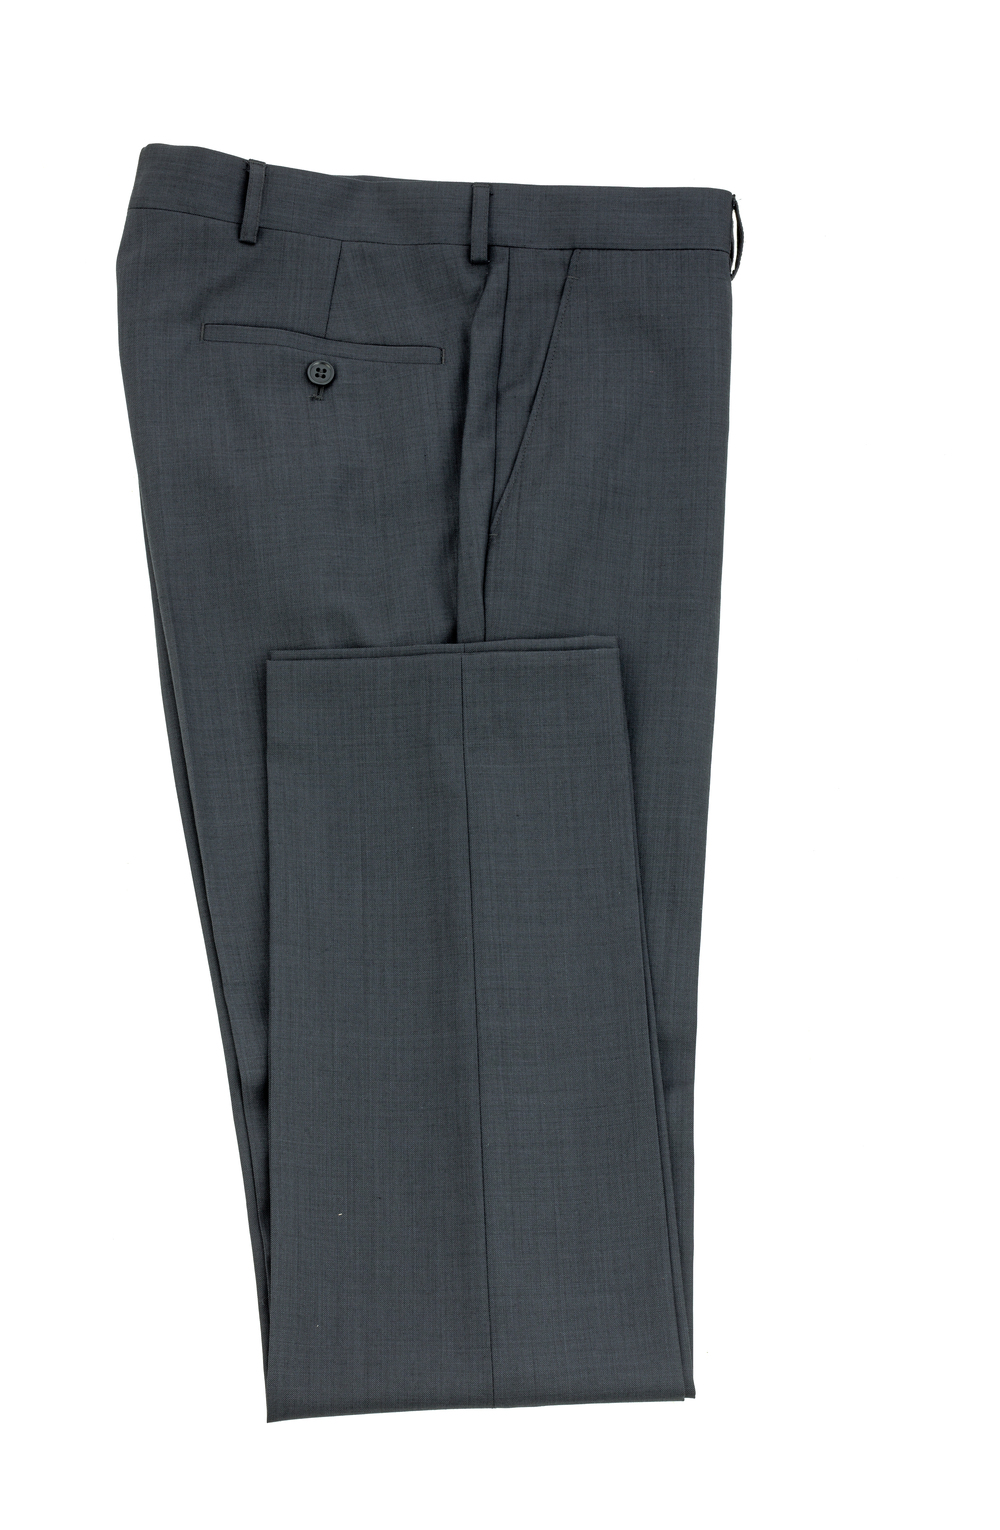 New England Jet Charcoal Trouser